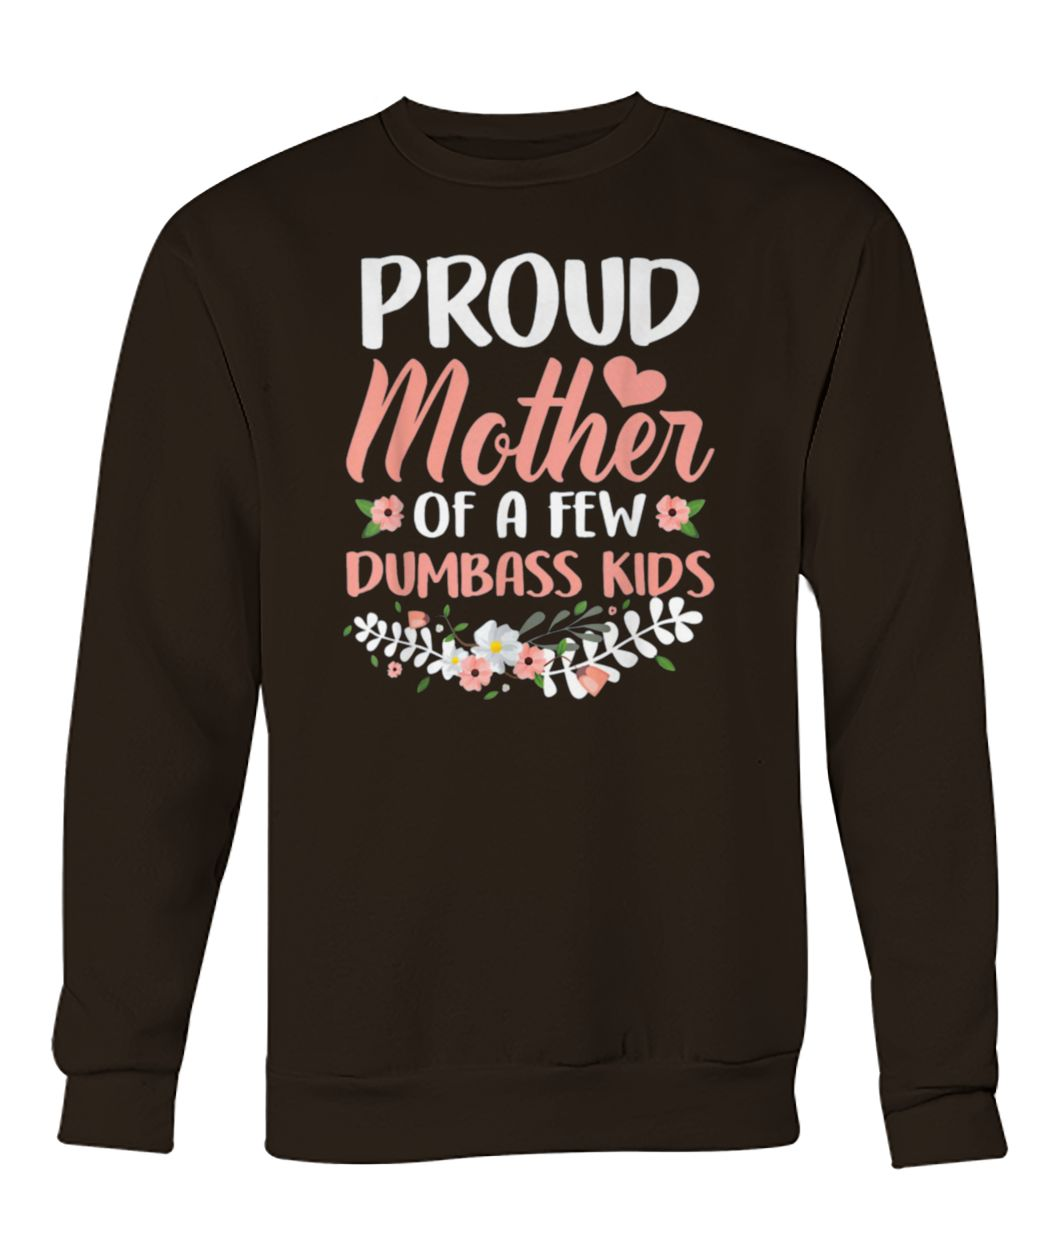 Flower proud mother of a few dumbass kids crew neck sweatshirt